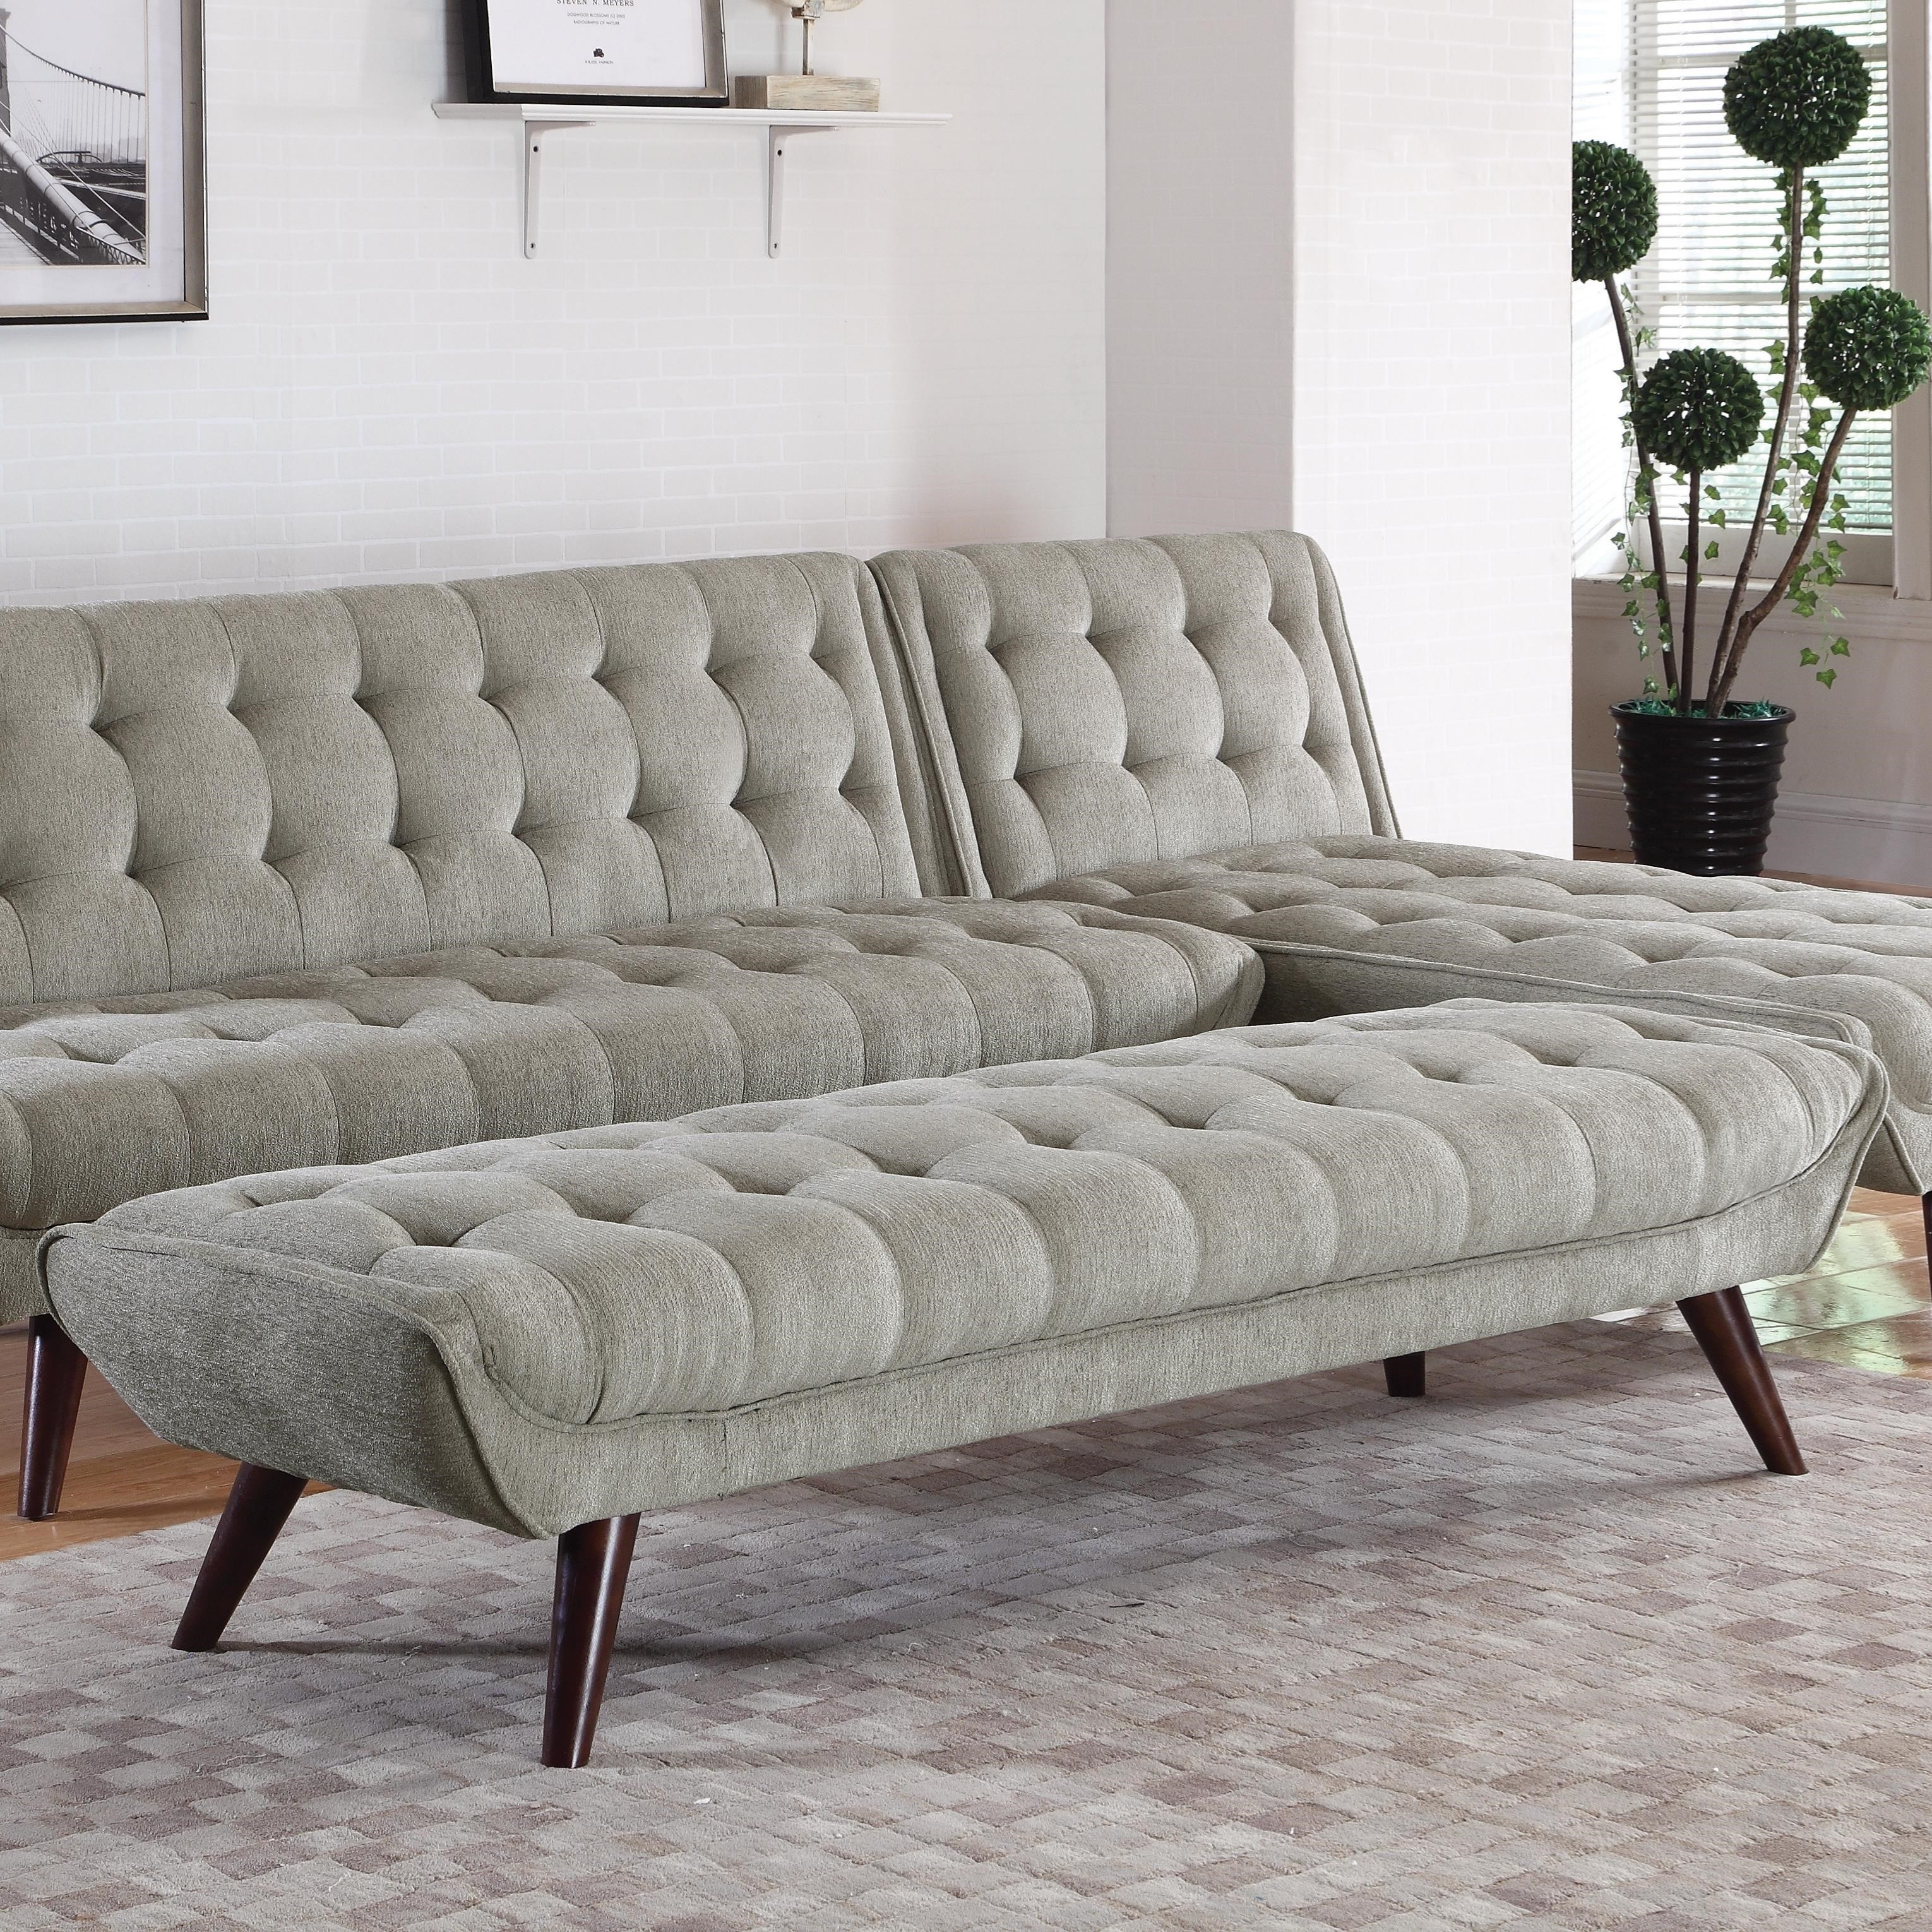 Coaster natalia 505609 mid century modern tufted bench - Upholstered benches for living room ...